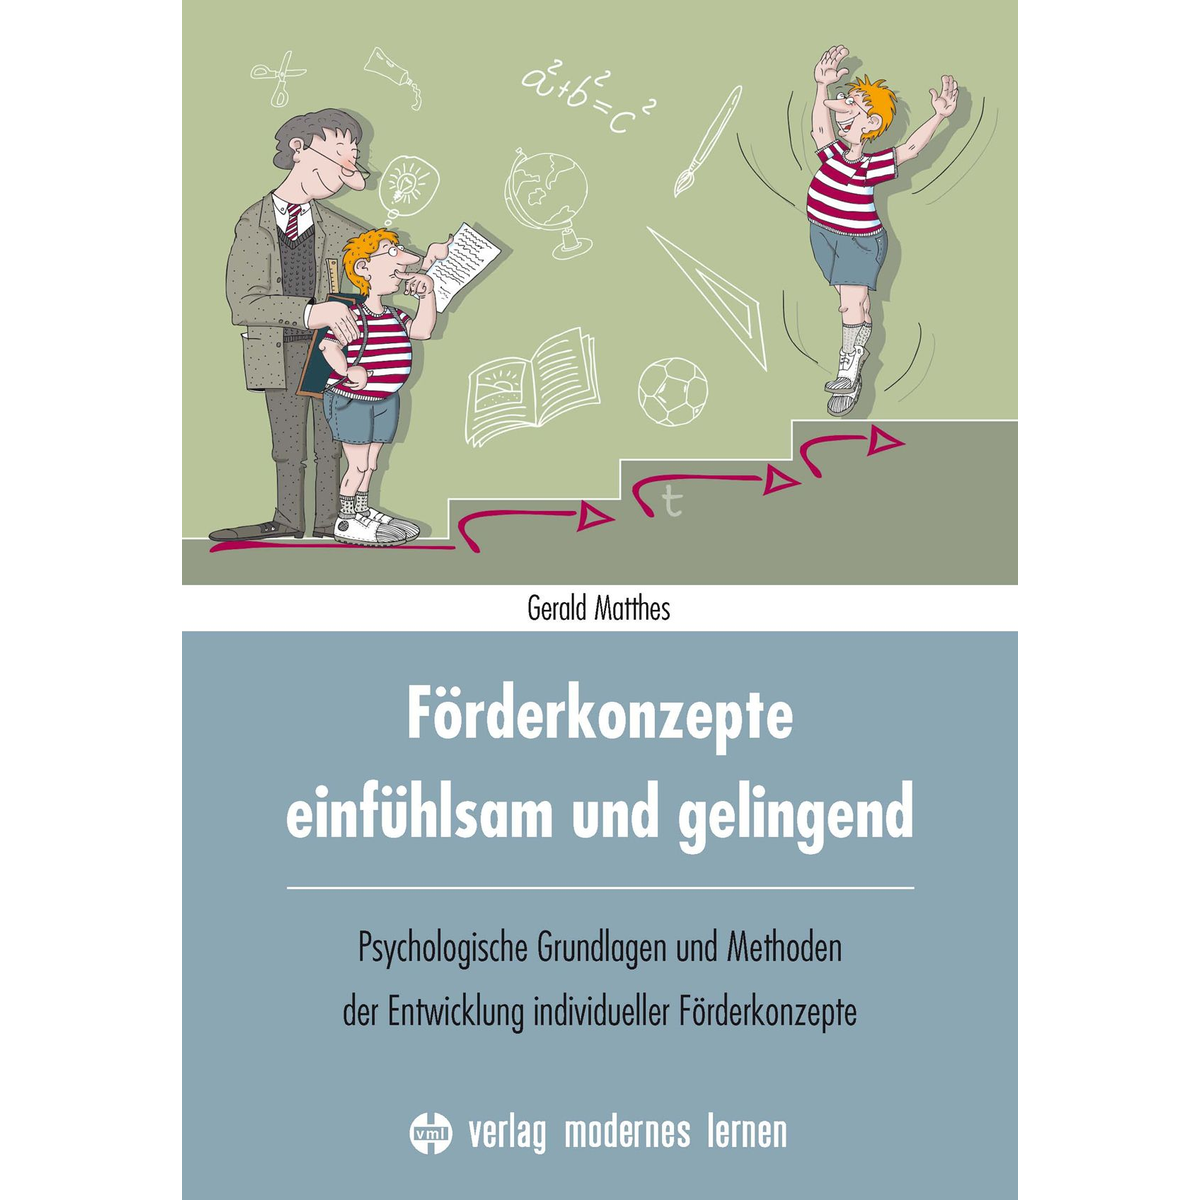 ISBN 9783808008263 book German Paperback 200 pages